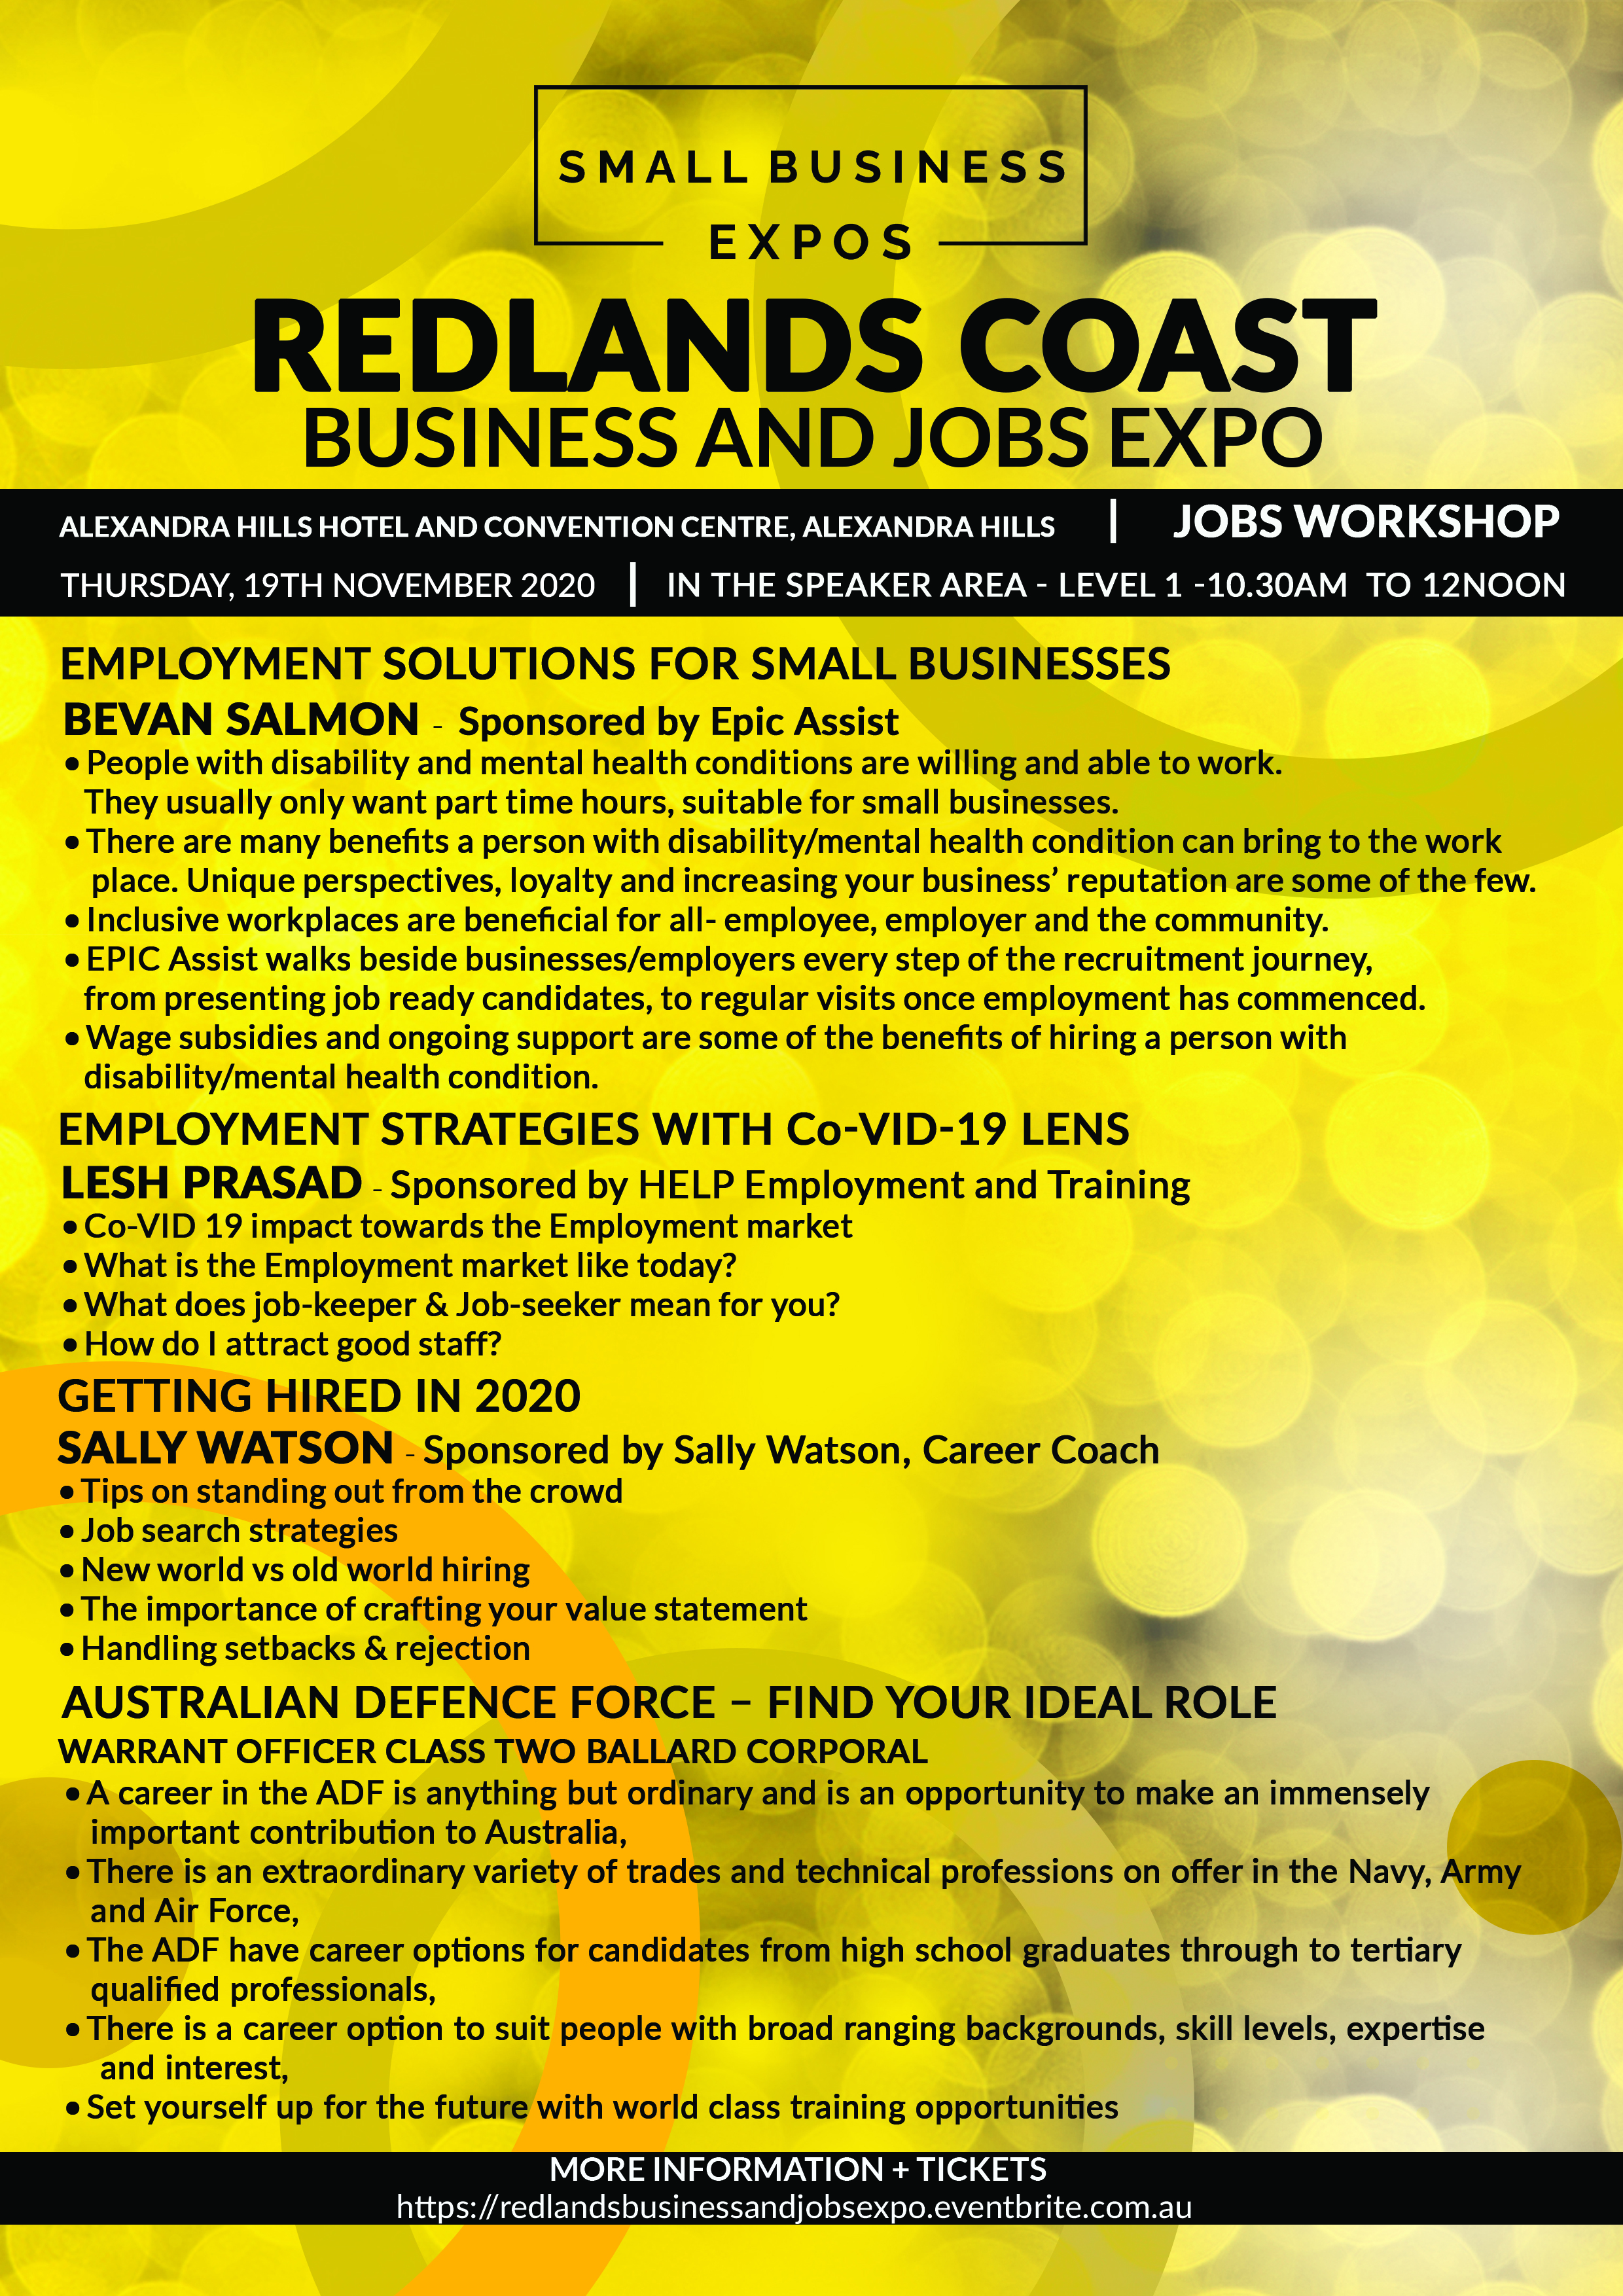 Business Expos | Brisbane | Gold Coast | Small Business Expos | Redlands Job Workshop